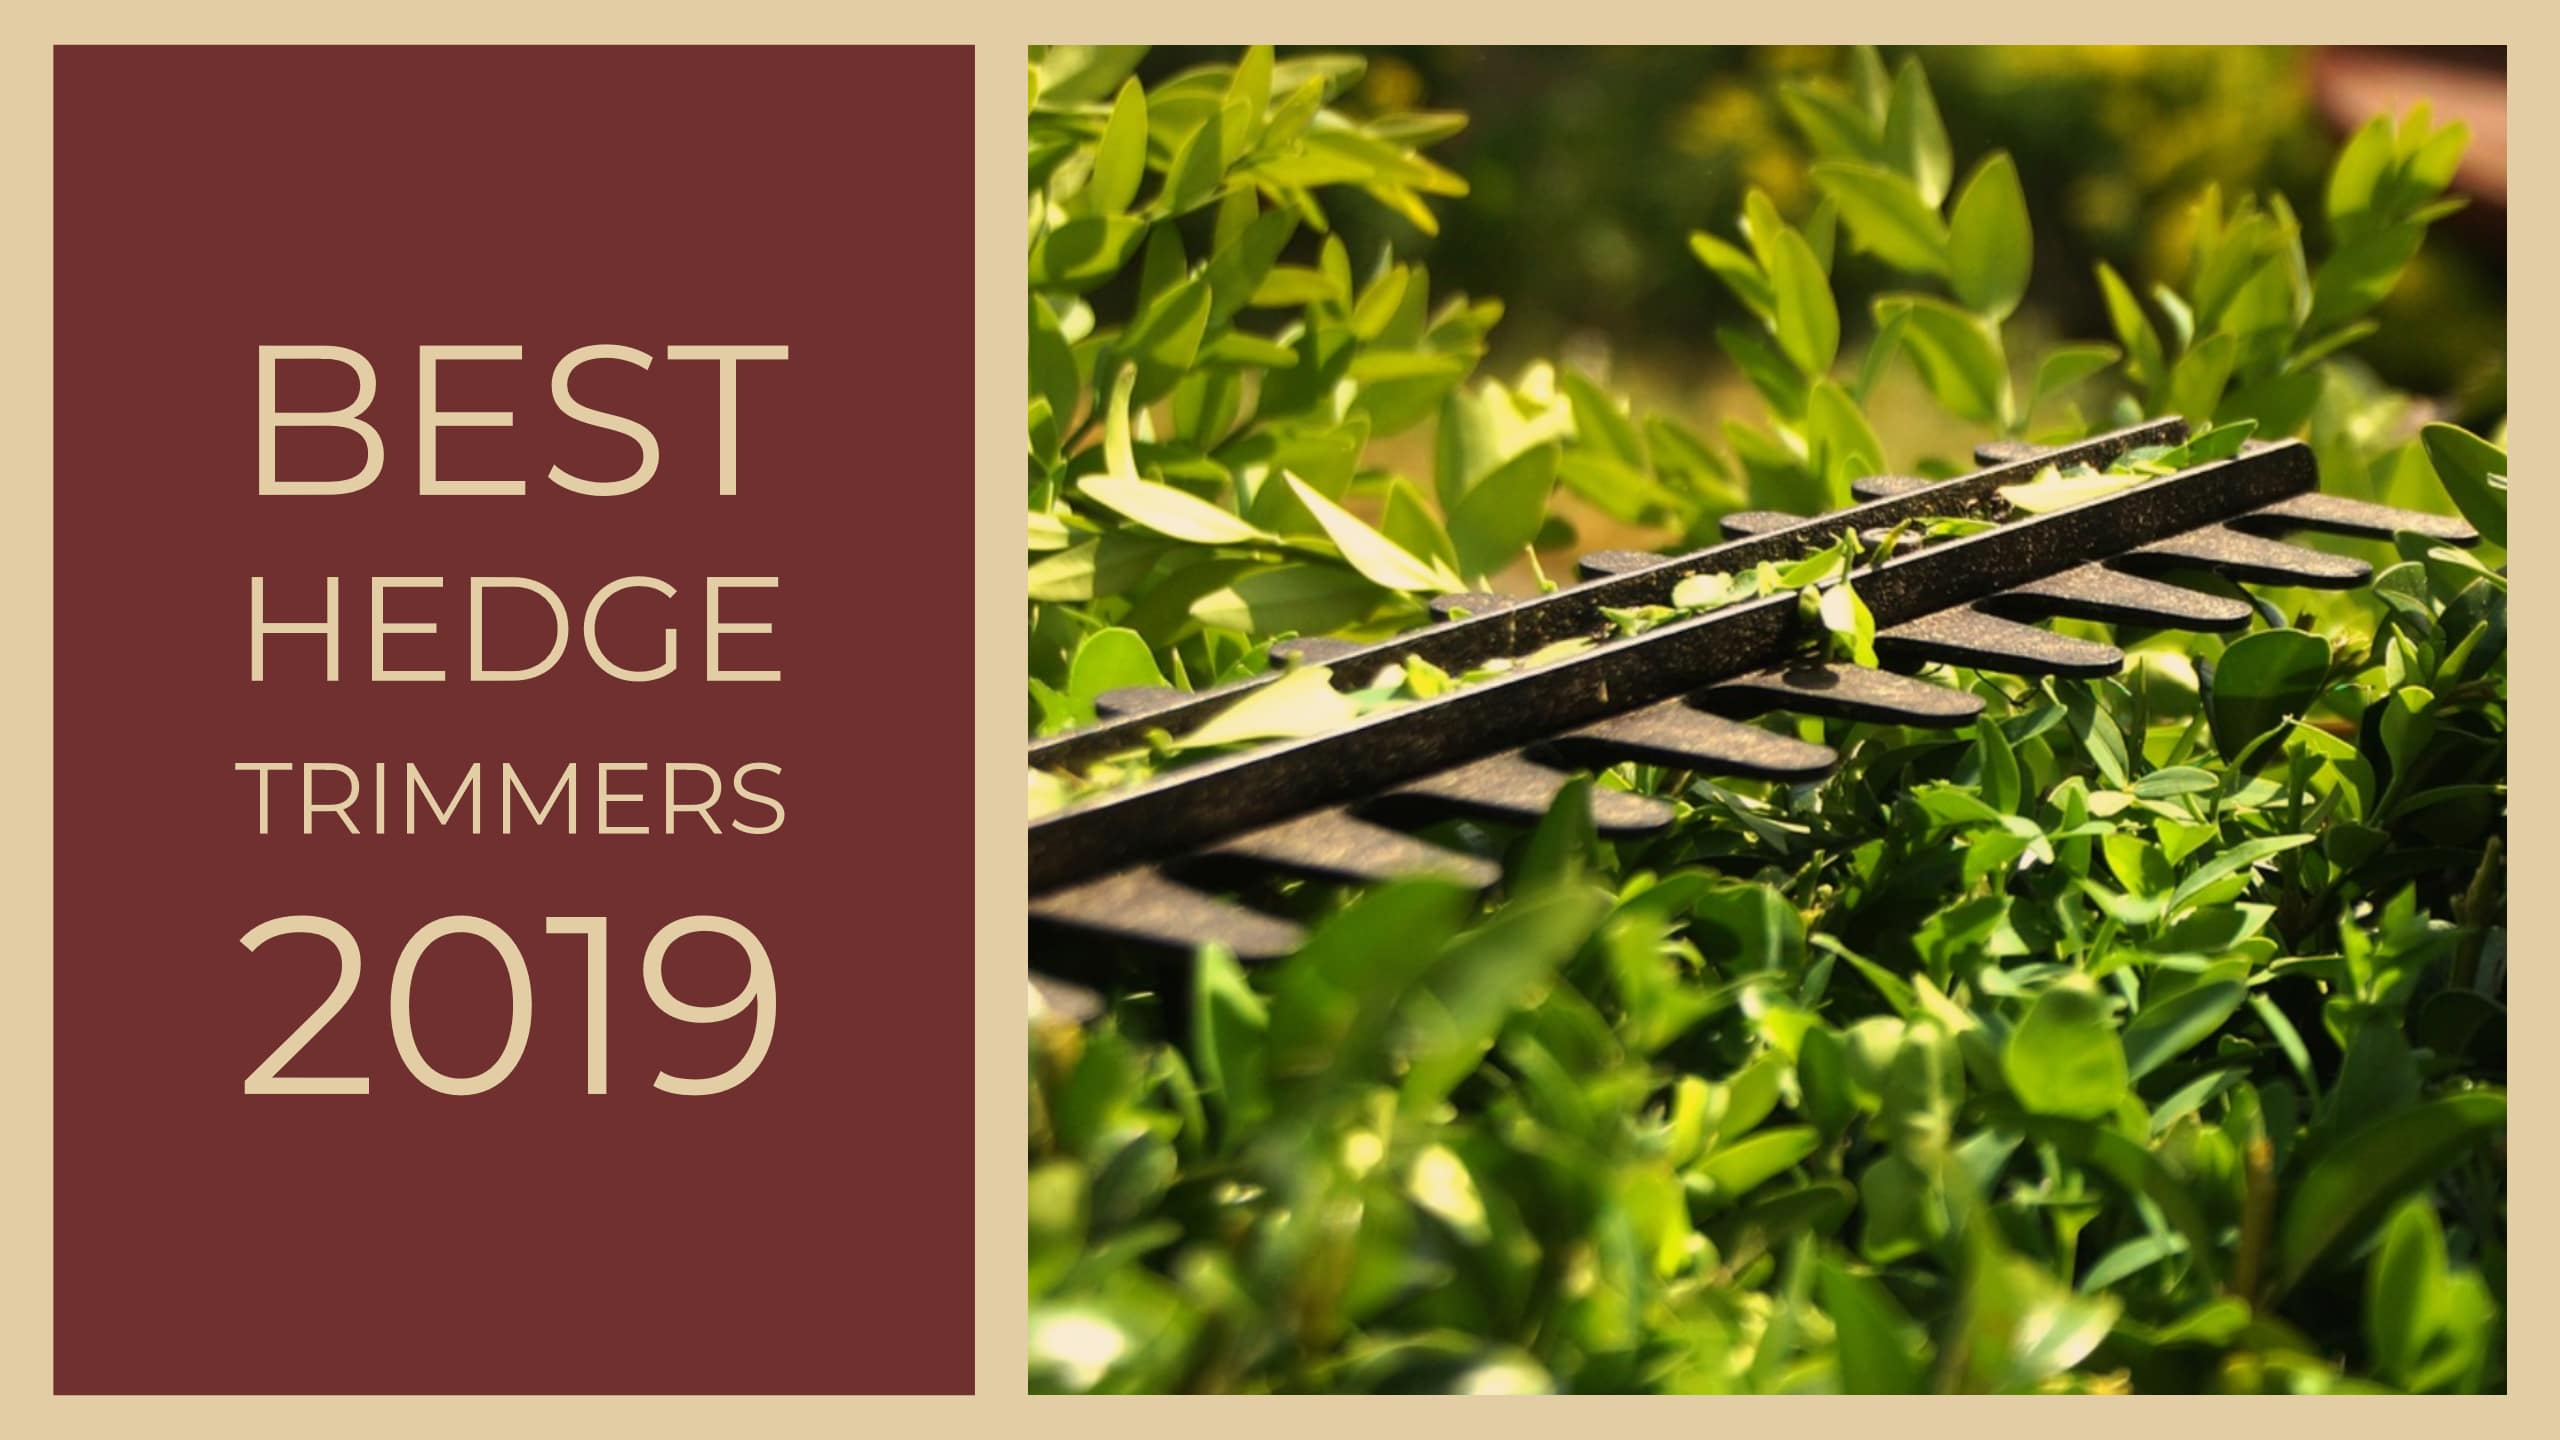 Best Hedge Trimmers 2020 Reviews, Ratings & Comparisons